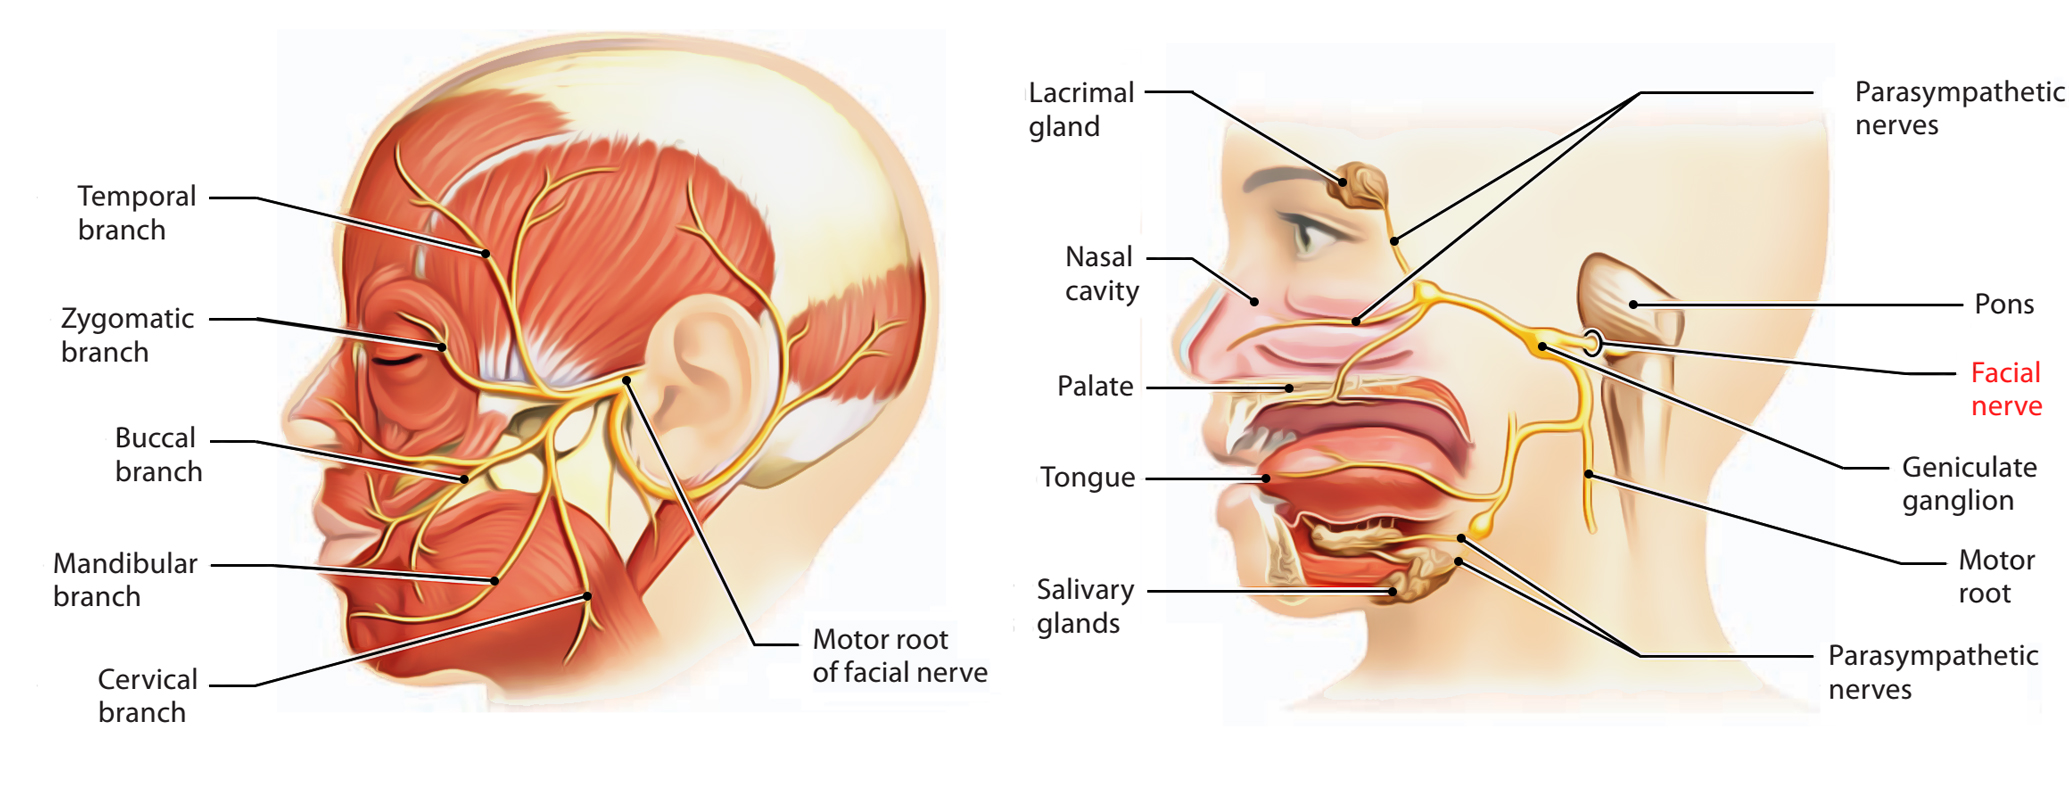 Anatomy of the facial nerve this phrase